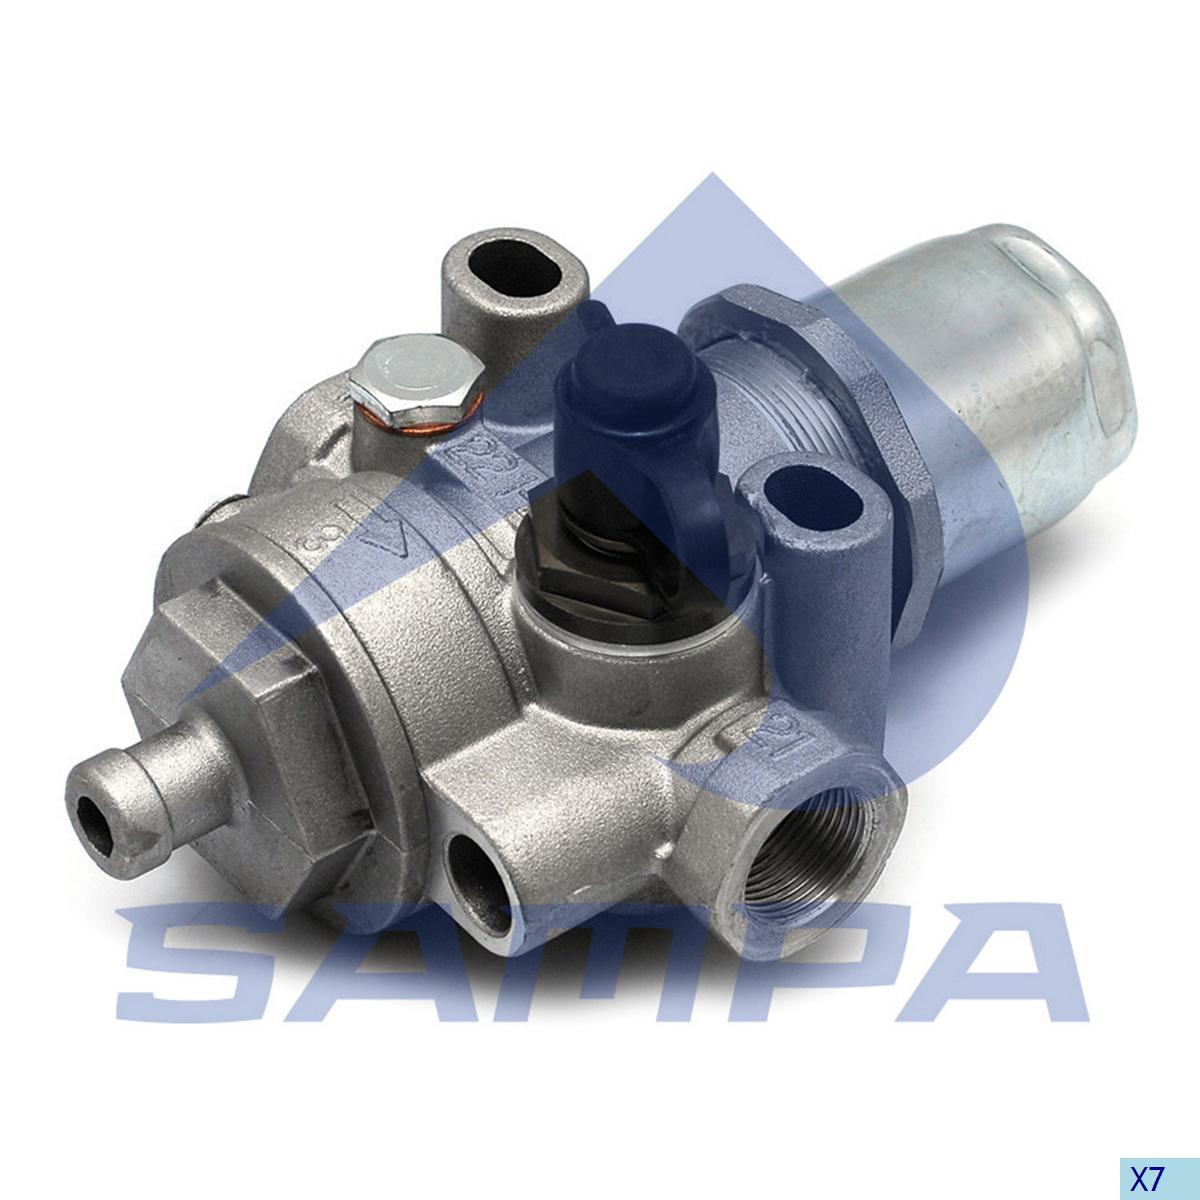 Pressure Control Valve, Mercedes, Compressed Air System